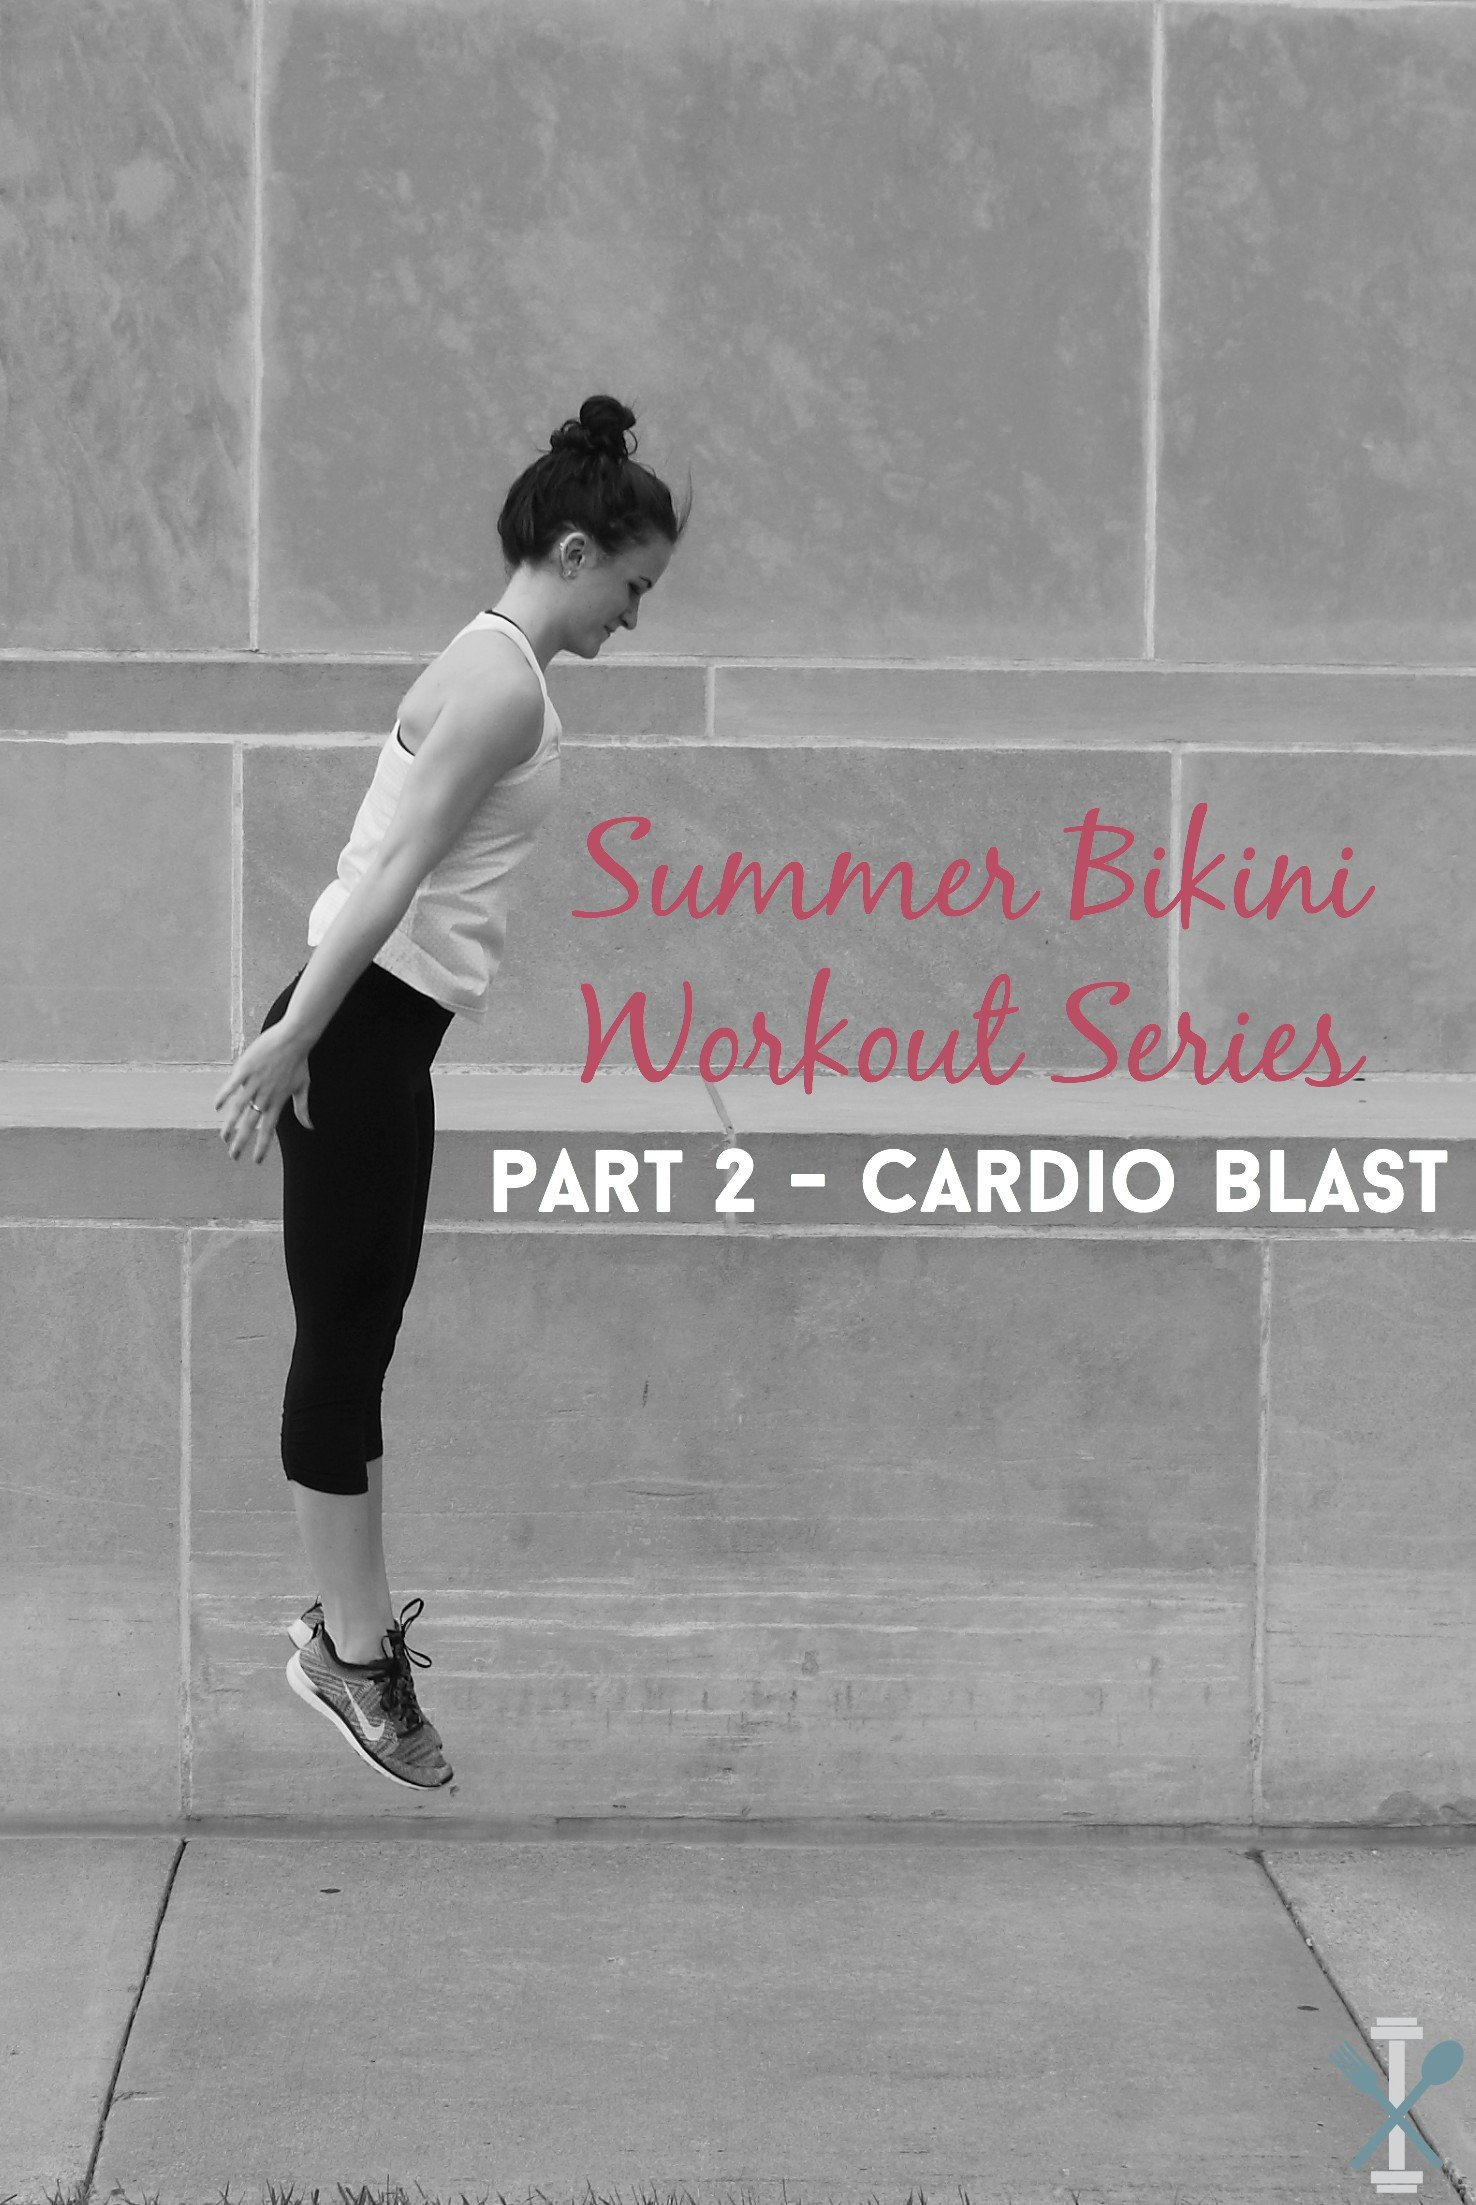 Part TWO! Summer bikini workout series - cardio blast. Burn calories FAST and get in swimsuit shape with this four-part exercise series!